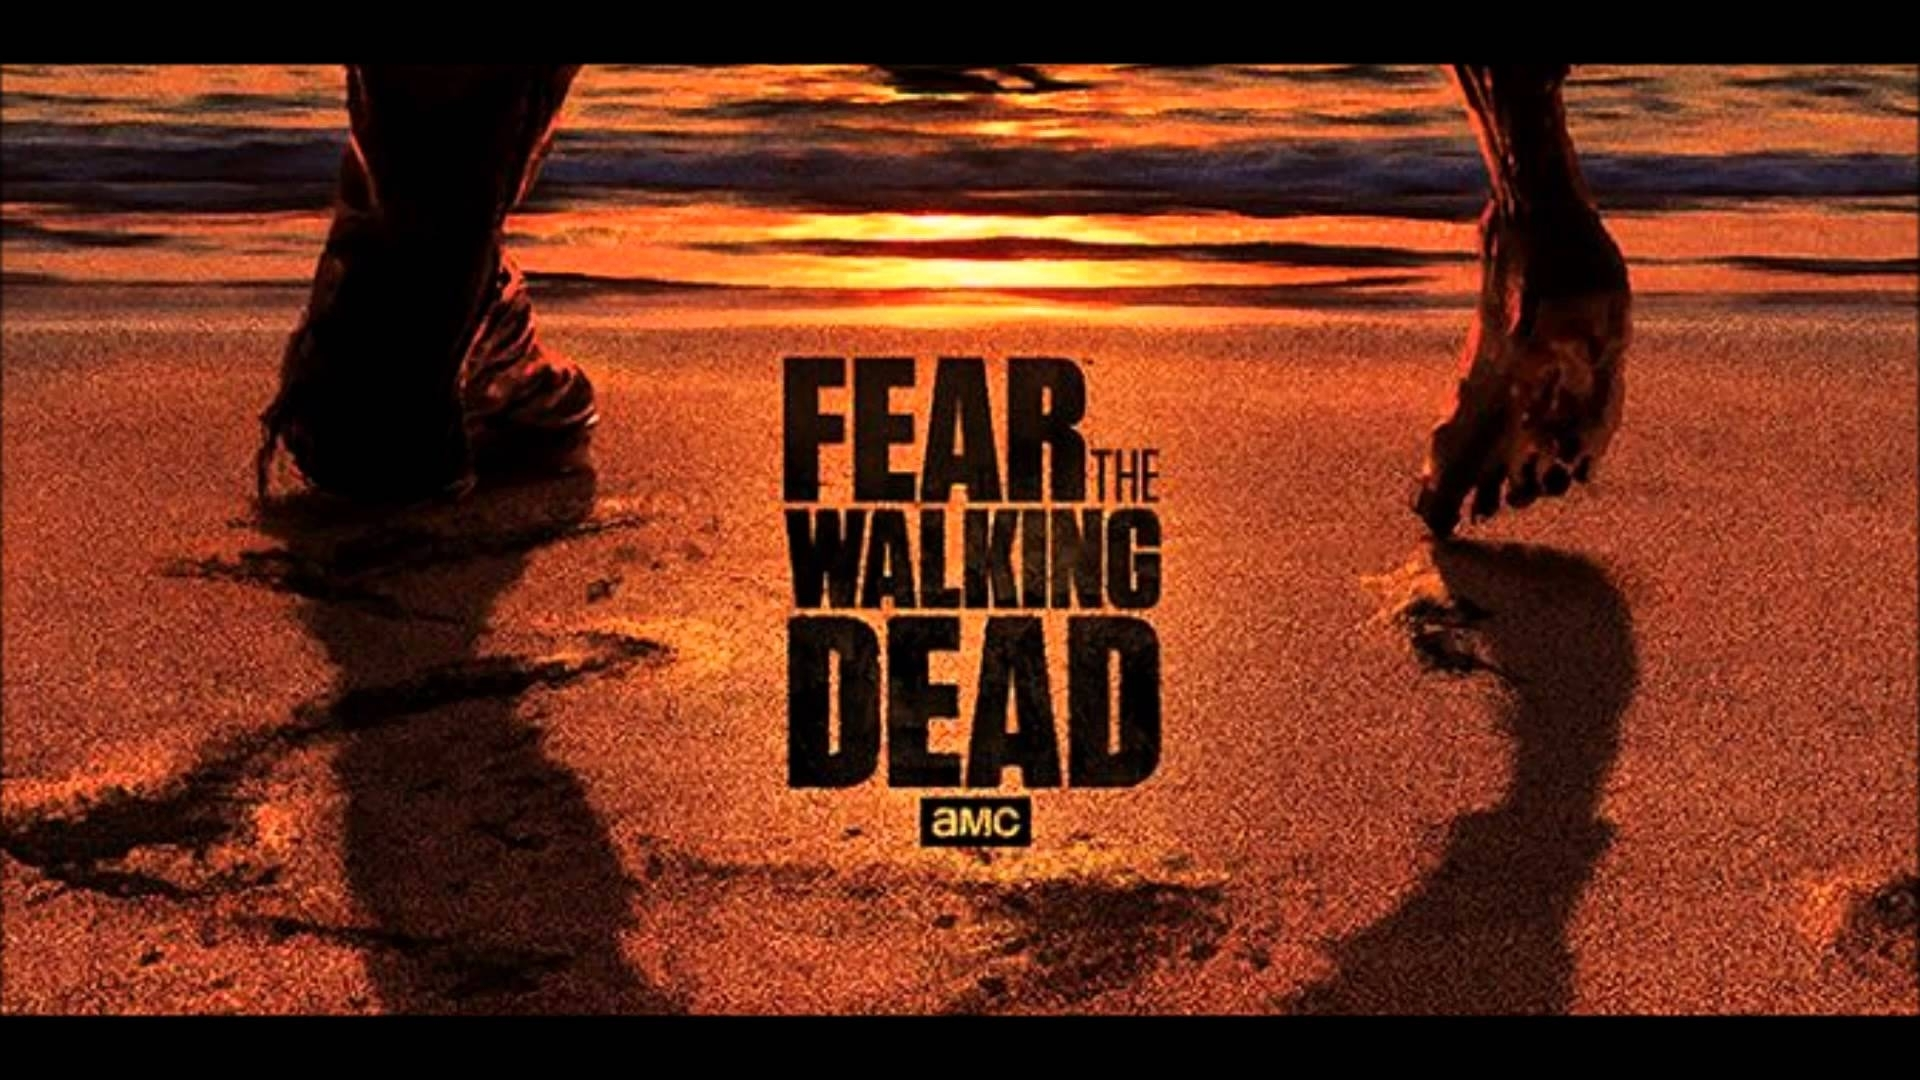 fear the walking dead wallpapers - wallpaper cave